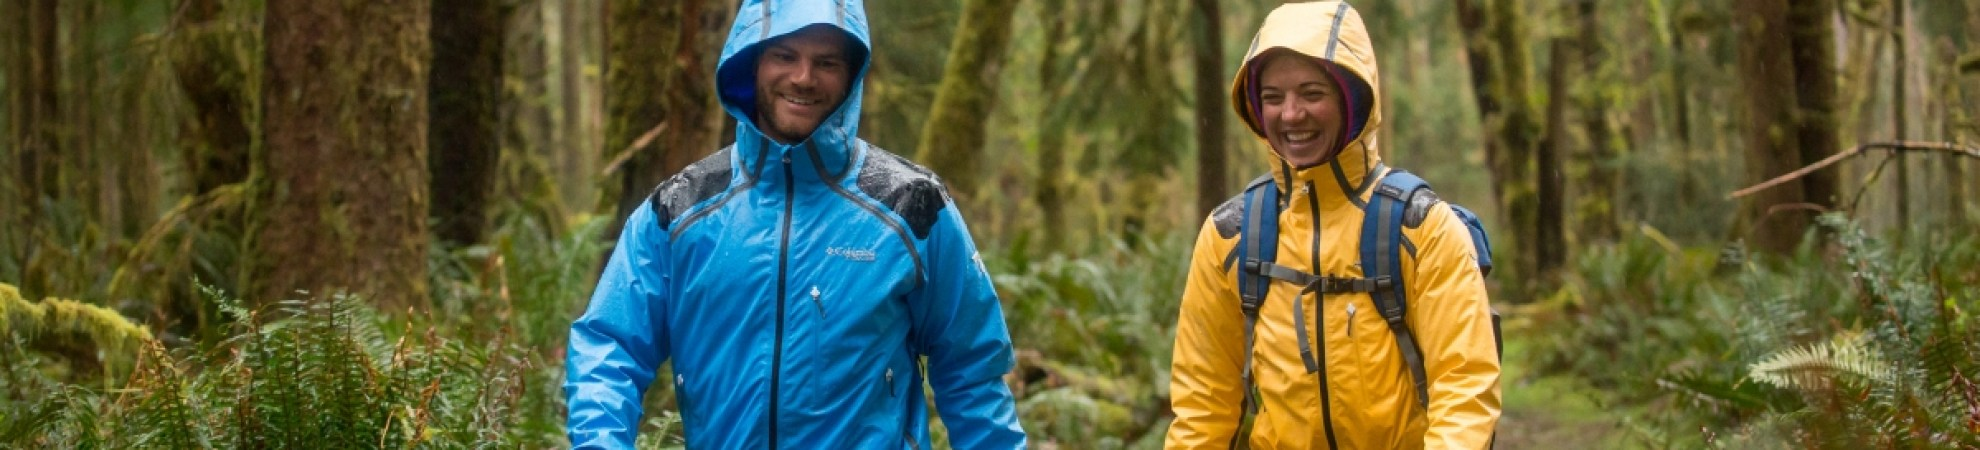 Trail Running Gear: Put a Spring in your Step